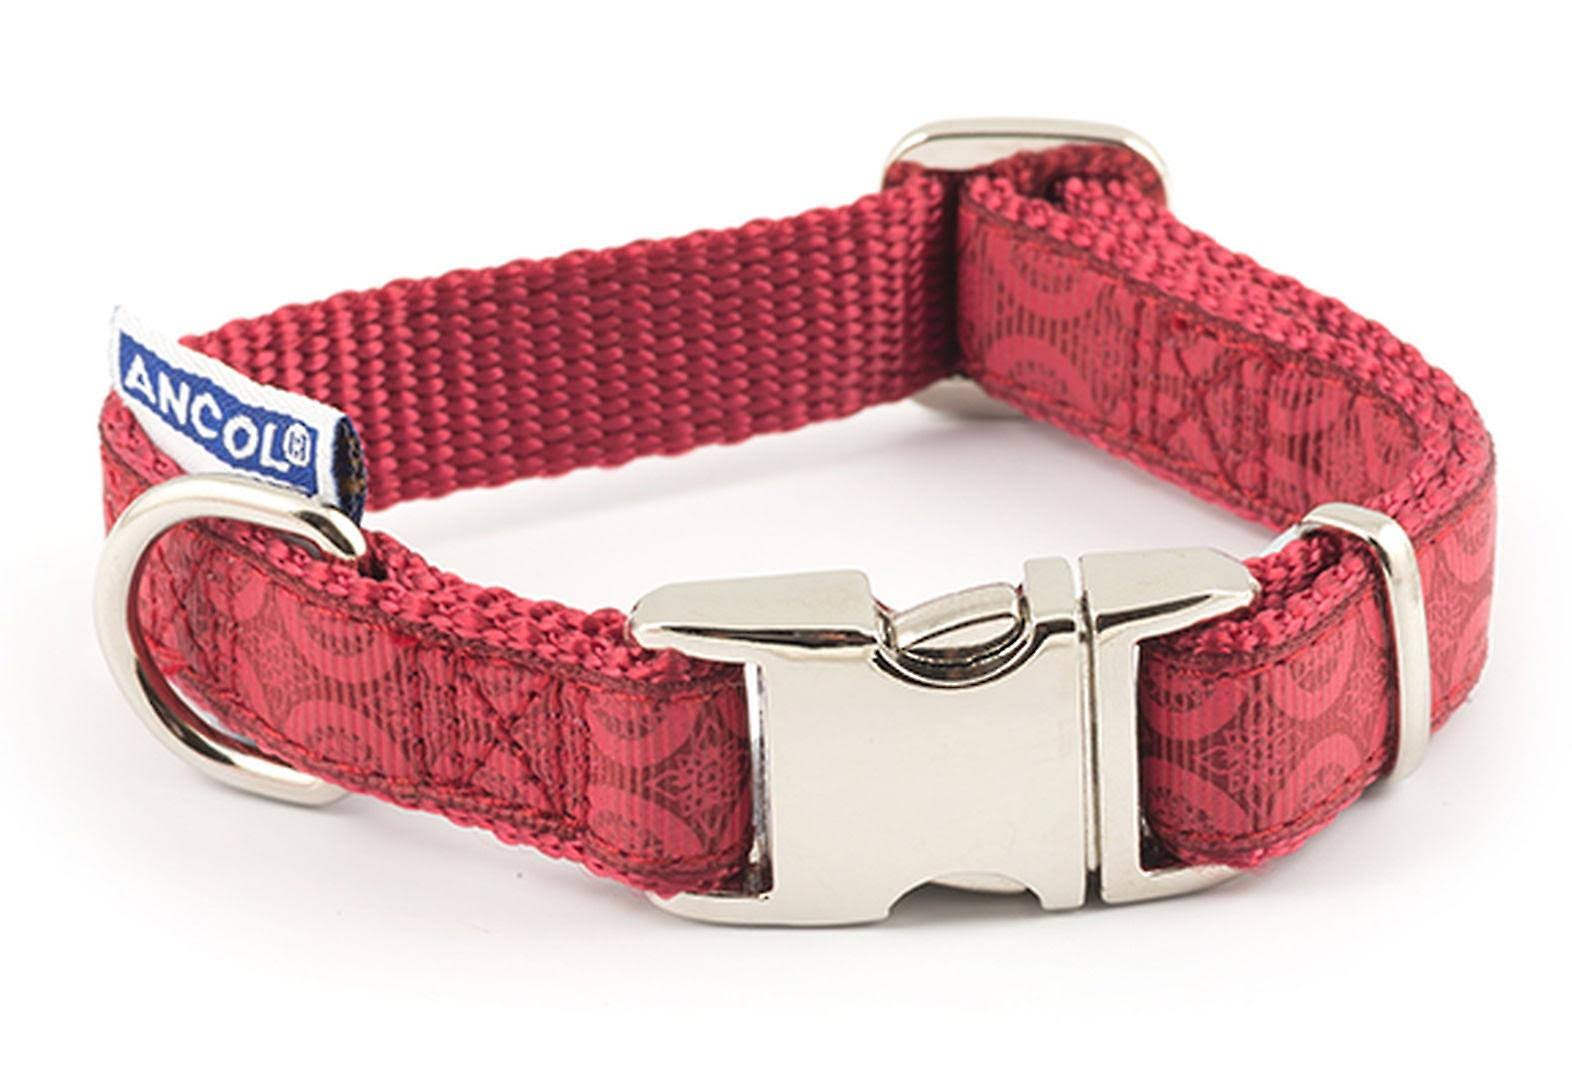 Ancol Indulgence Adjustable Collar Red